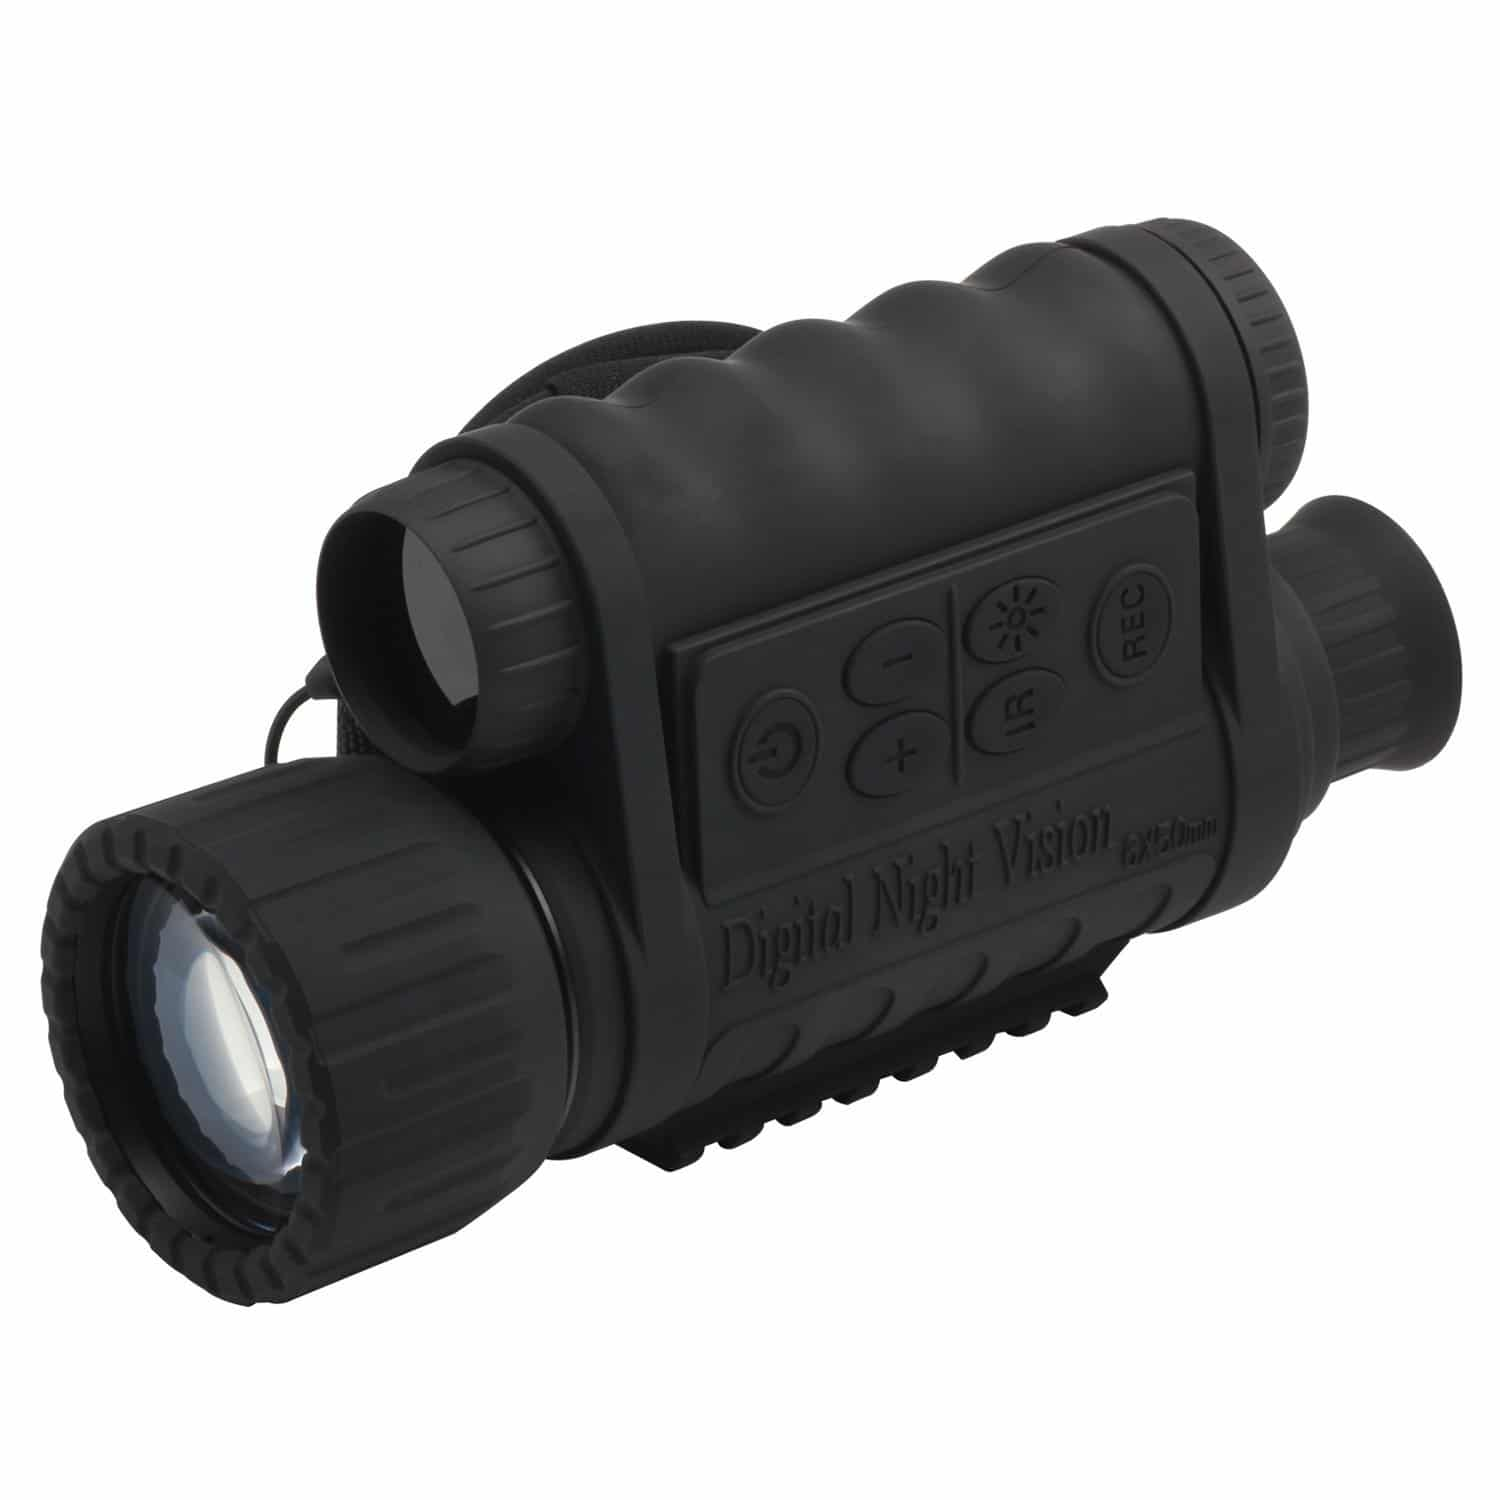 bestguarder 6x50mm hd digital night vision monocular review: best binoculars under $200